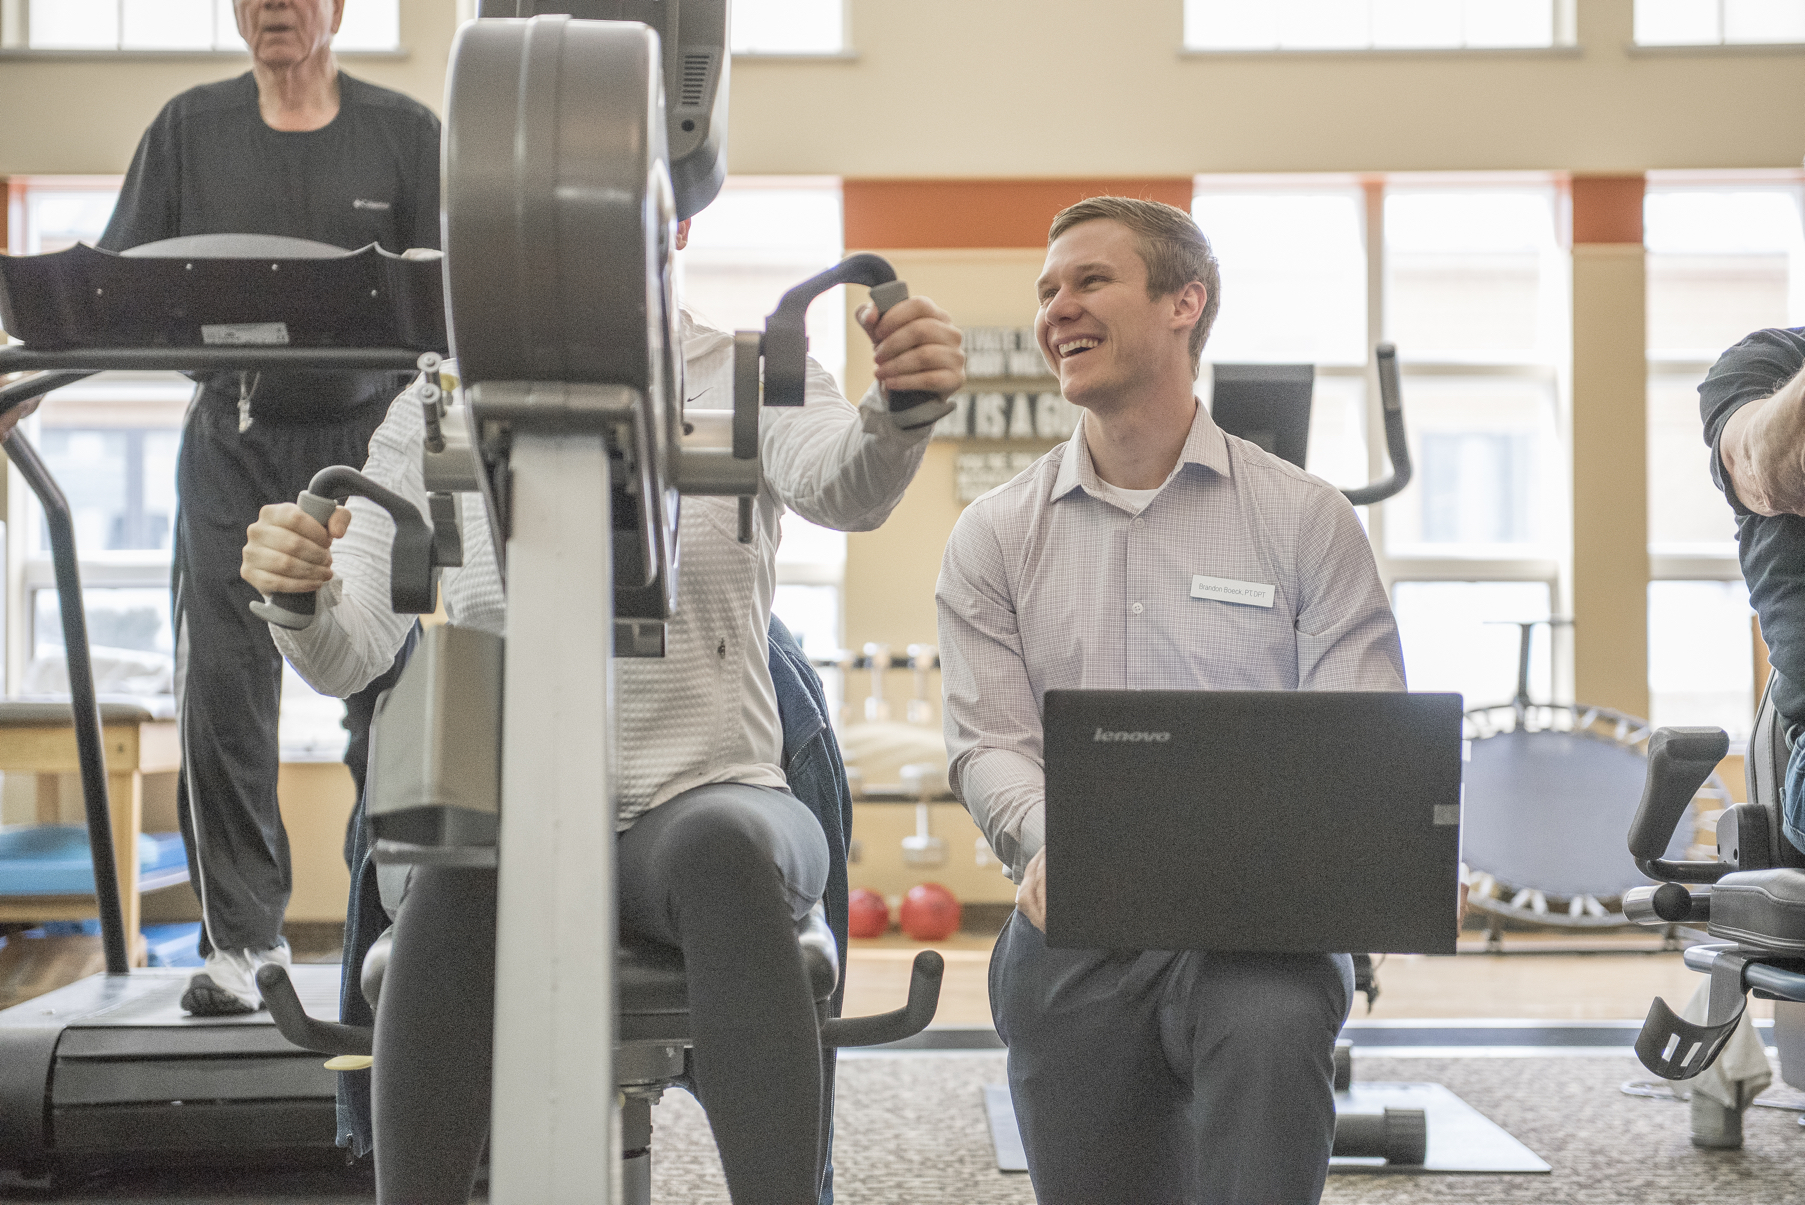 Celebrate National Physical Therapy Month by Getting Active